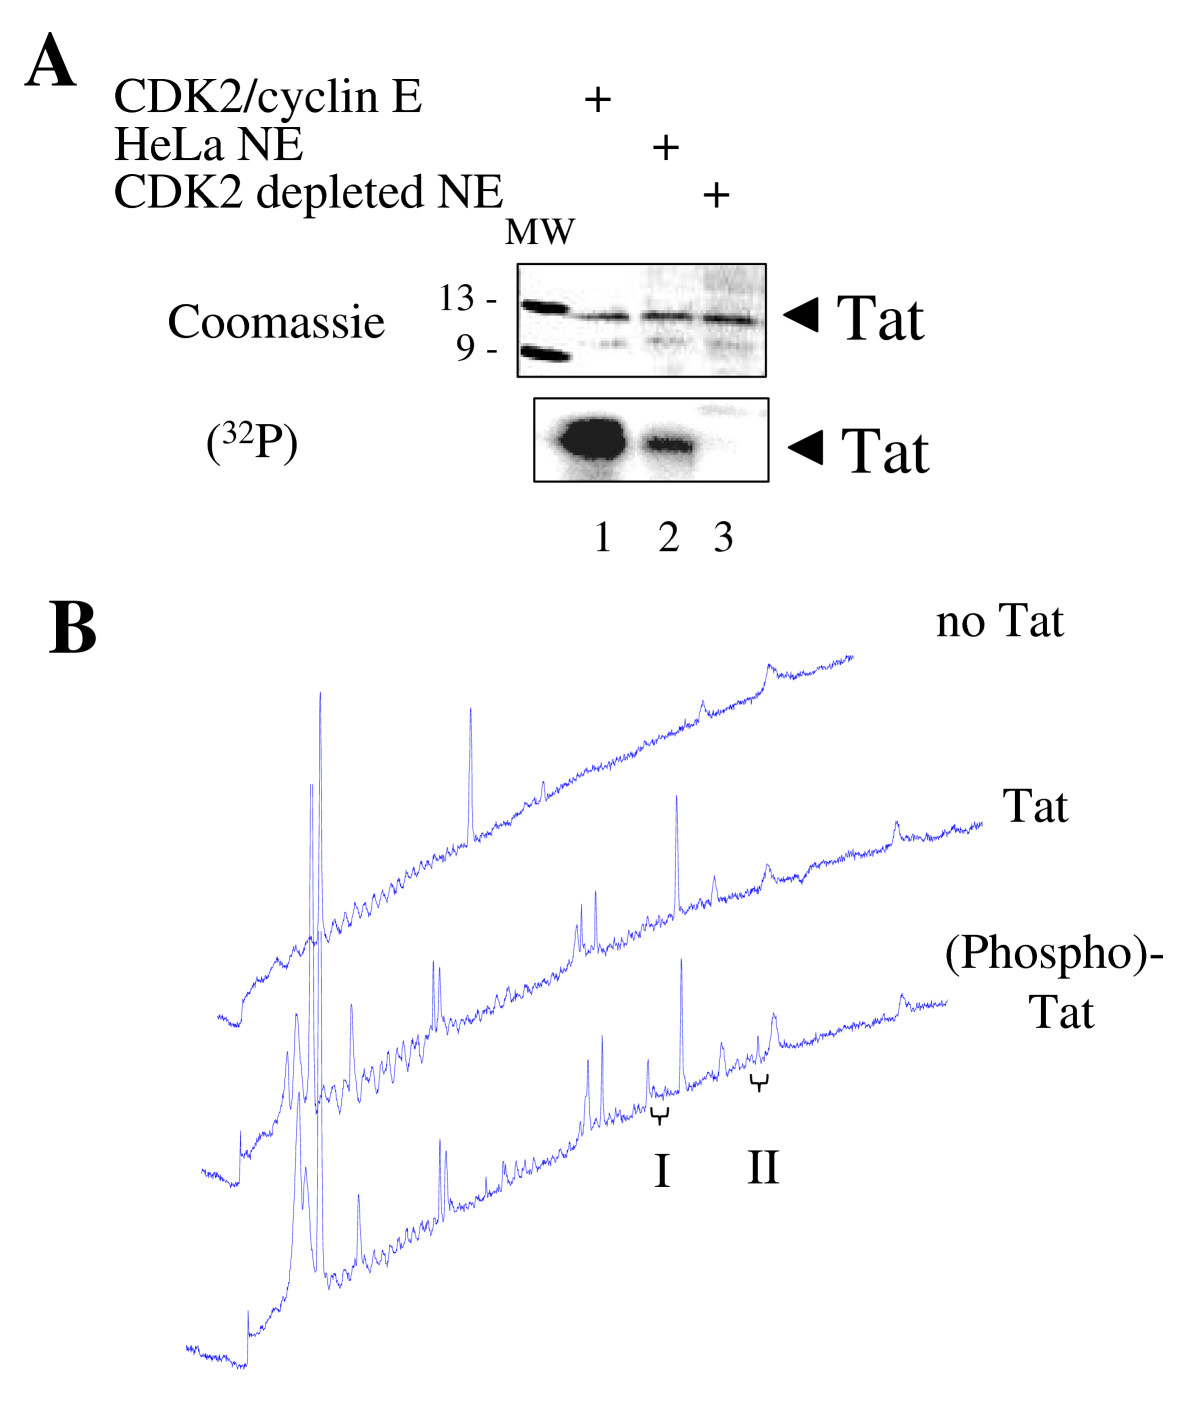 https://static-content.springer.com/image/art%3A10.1186%2F1742-4690-3-78/MediaObjects/12977_2006_Article_520_Fig1_HTML.jpg